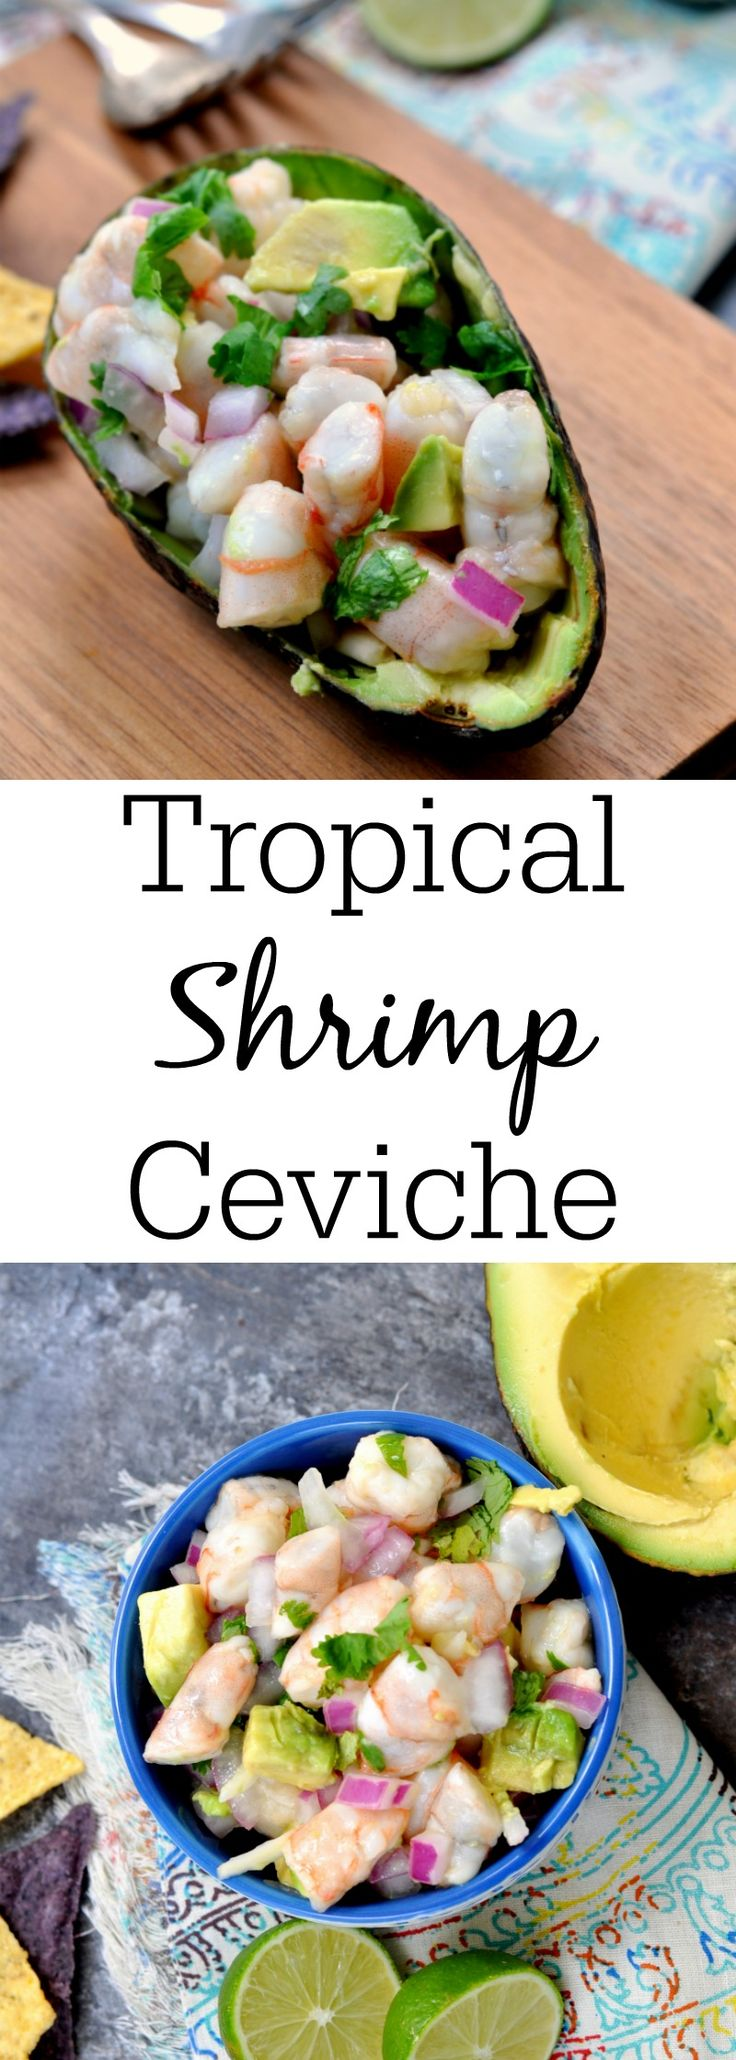 1000+ ideas about Ceviche Mexican on Pinterest | Ceviche, Mexican ...